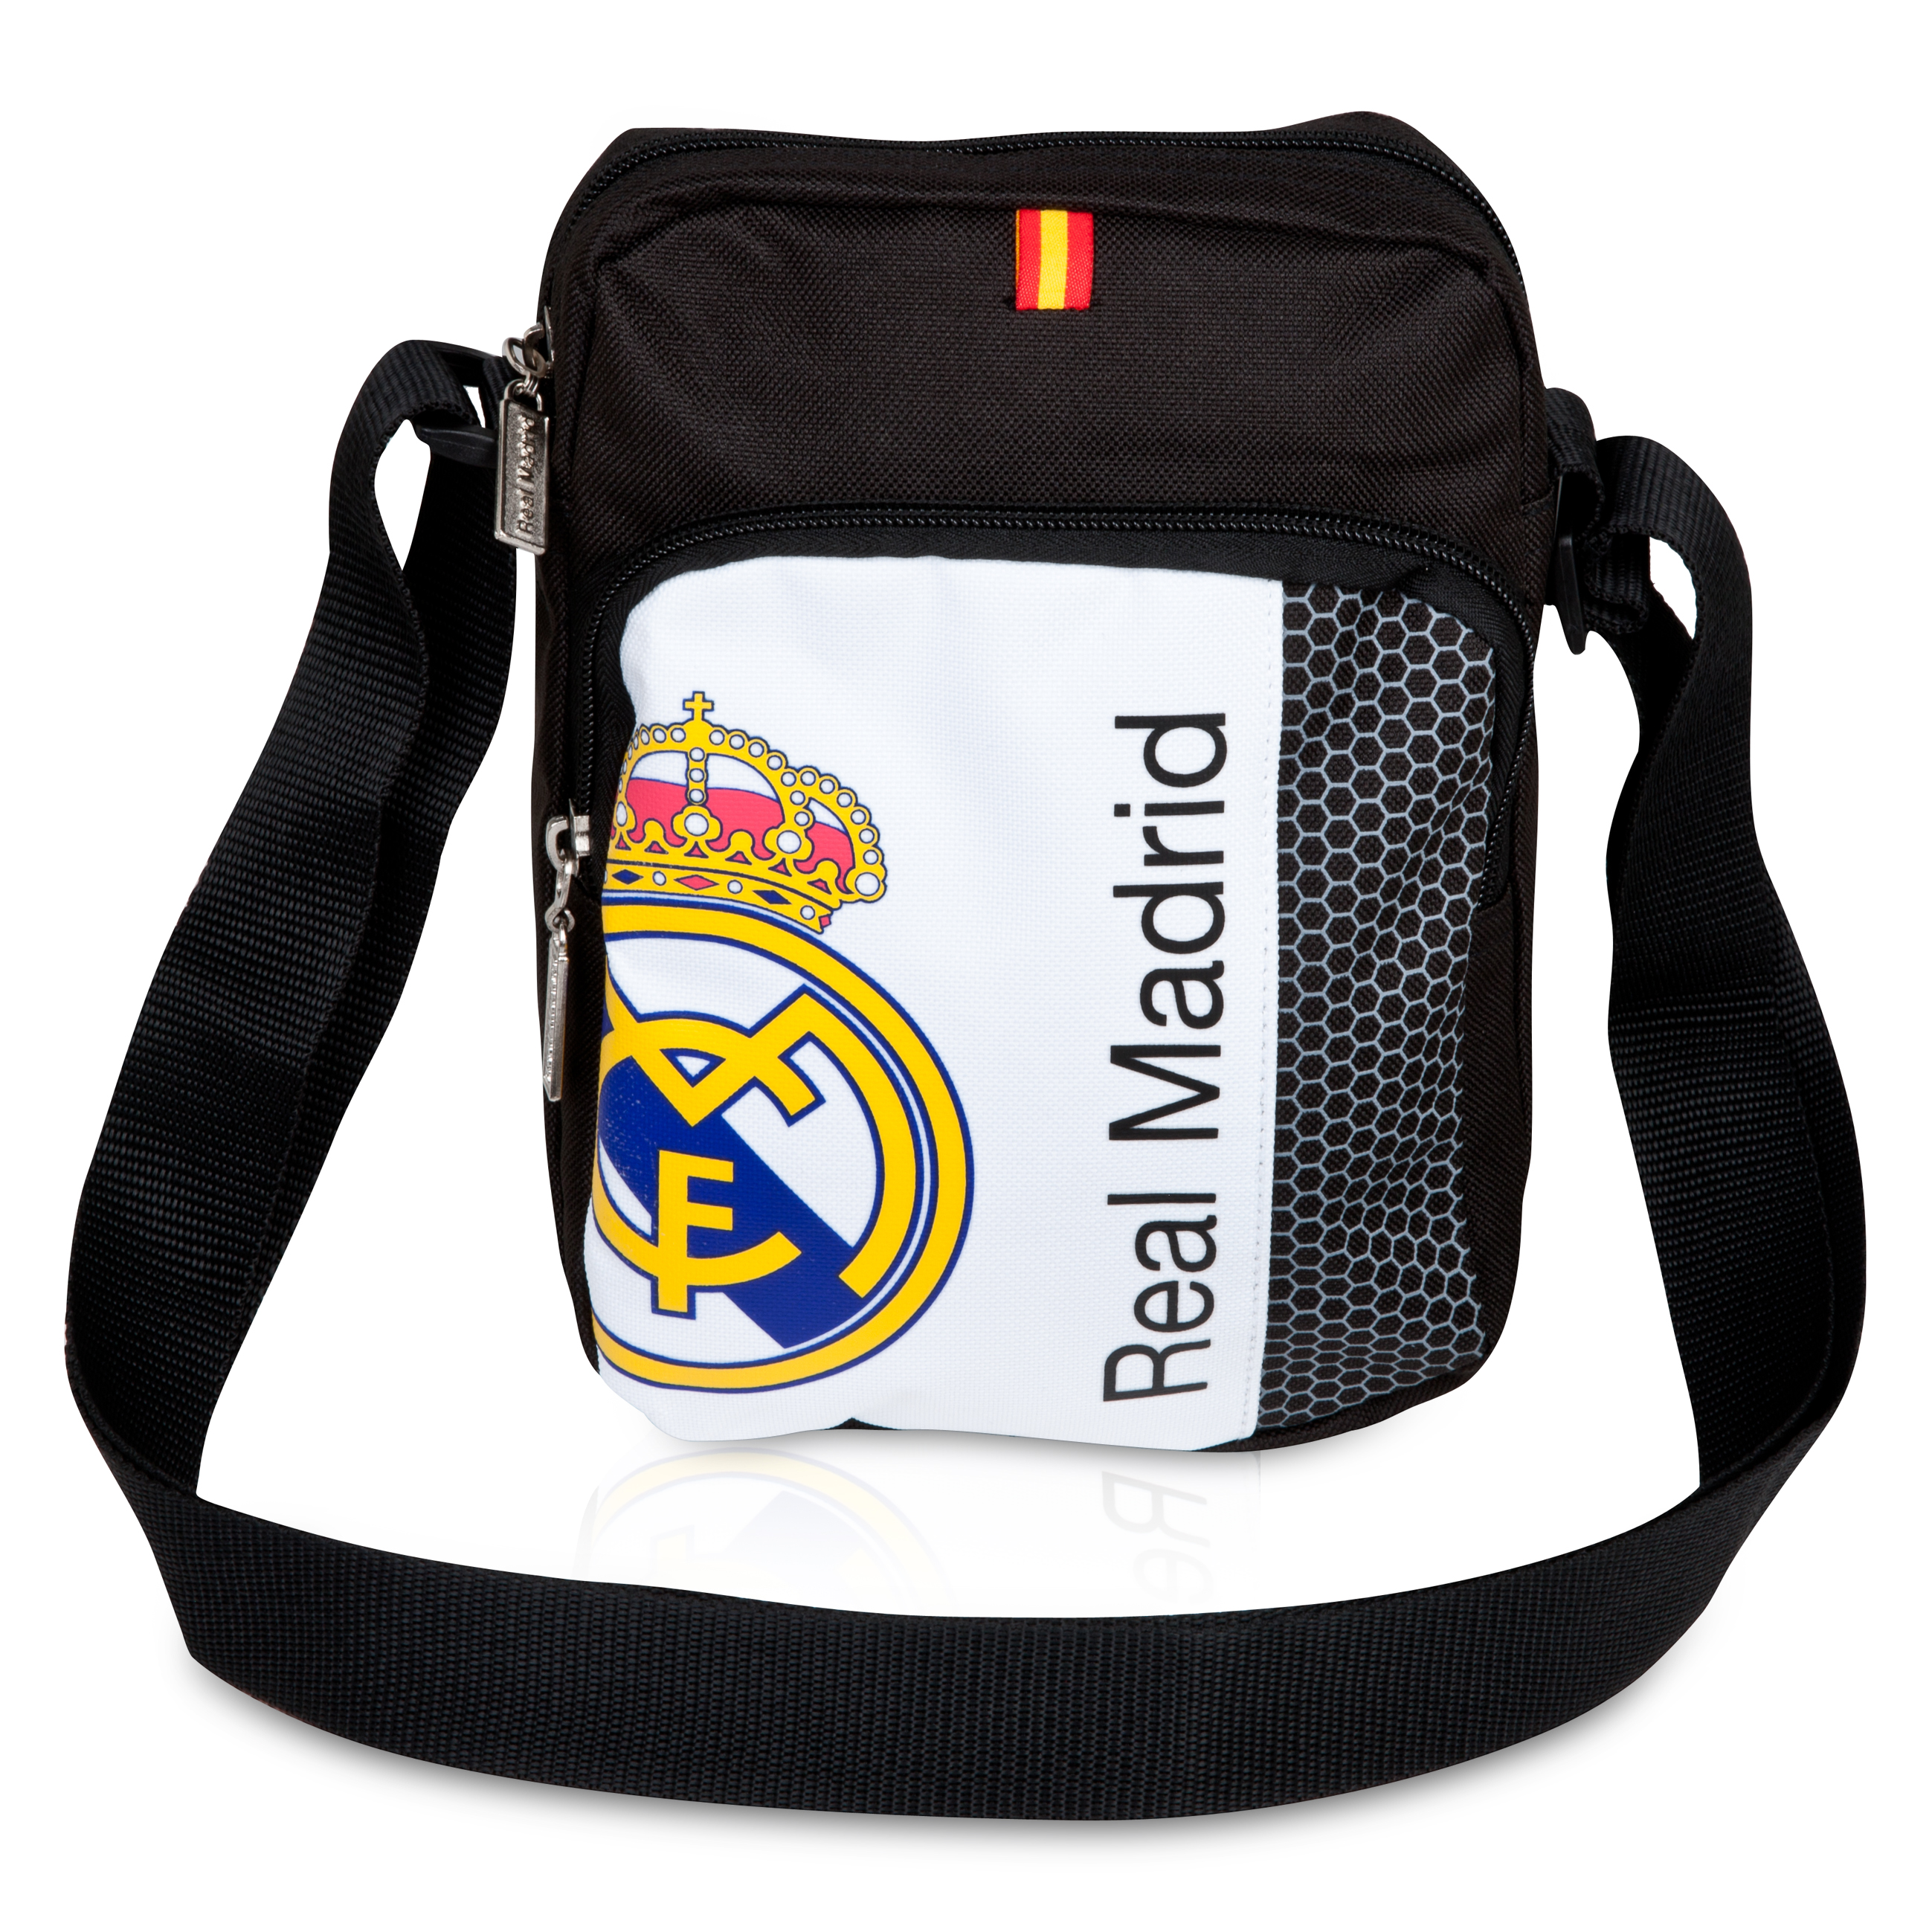 Real Madrid Small Shoulder Bag - 16cm